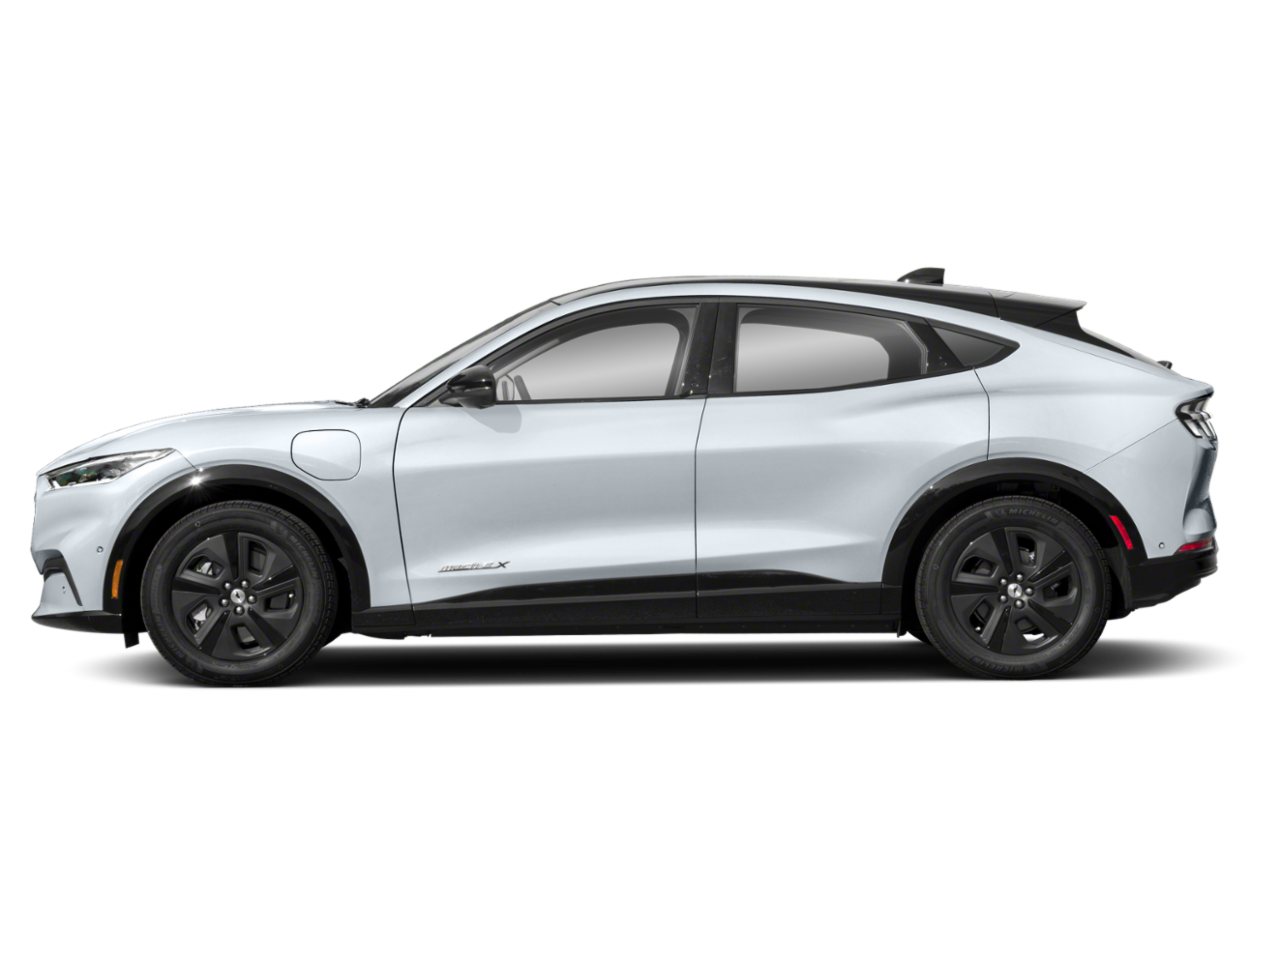 2021 Ford Mustang Mach-E California Route 1 RWD